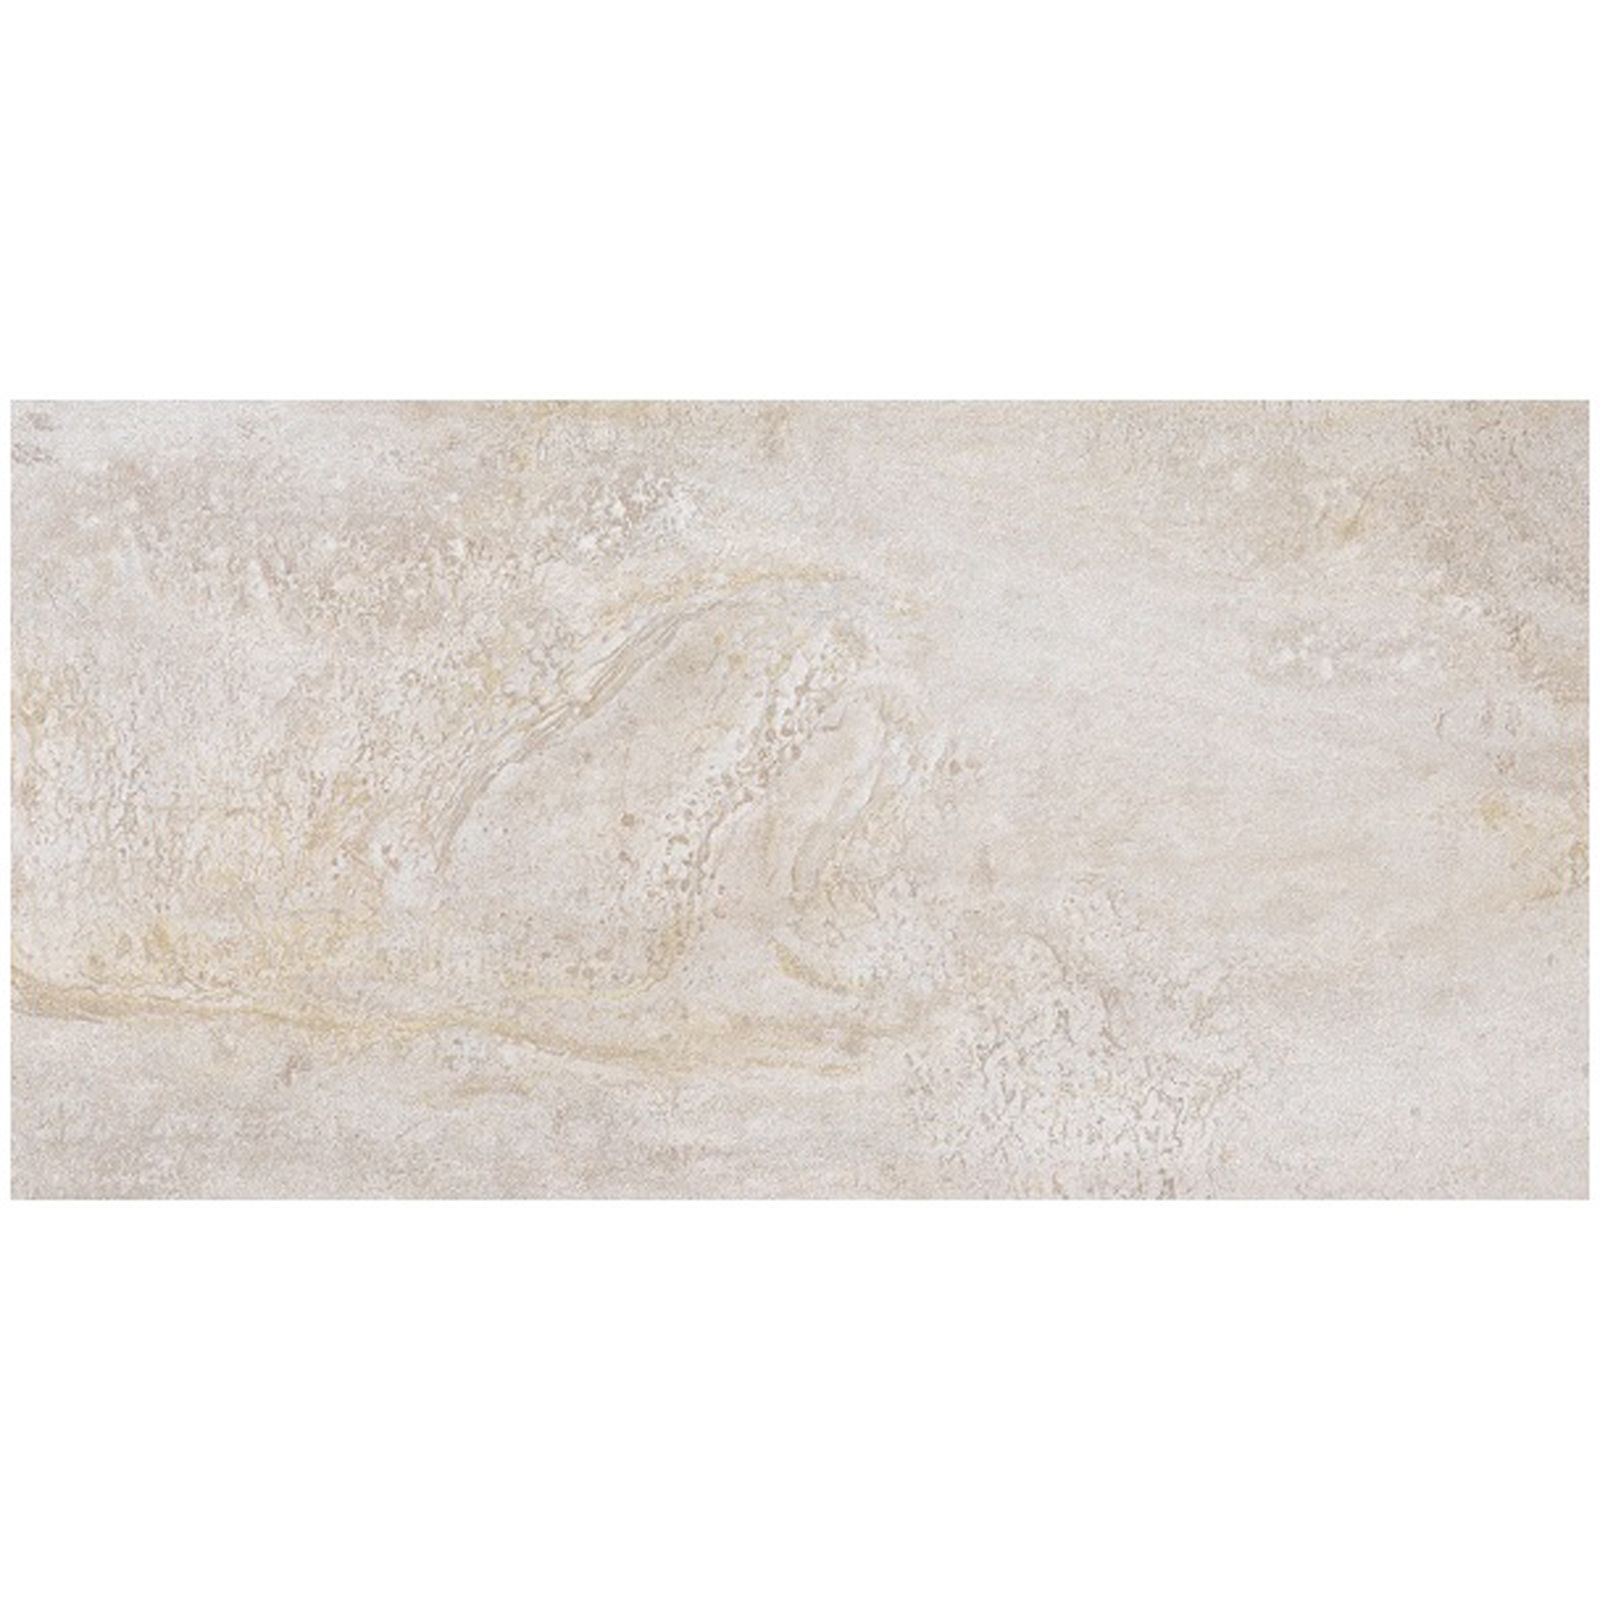 Find coulson 30 x 60cm concrete white niro porcelain floor tile find coulson 30 x concrete white niro porcelain floor tile 6 pack at bunnings warehouse visit your local store for the widest range of paint decorating dailygadgetfo Gallery